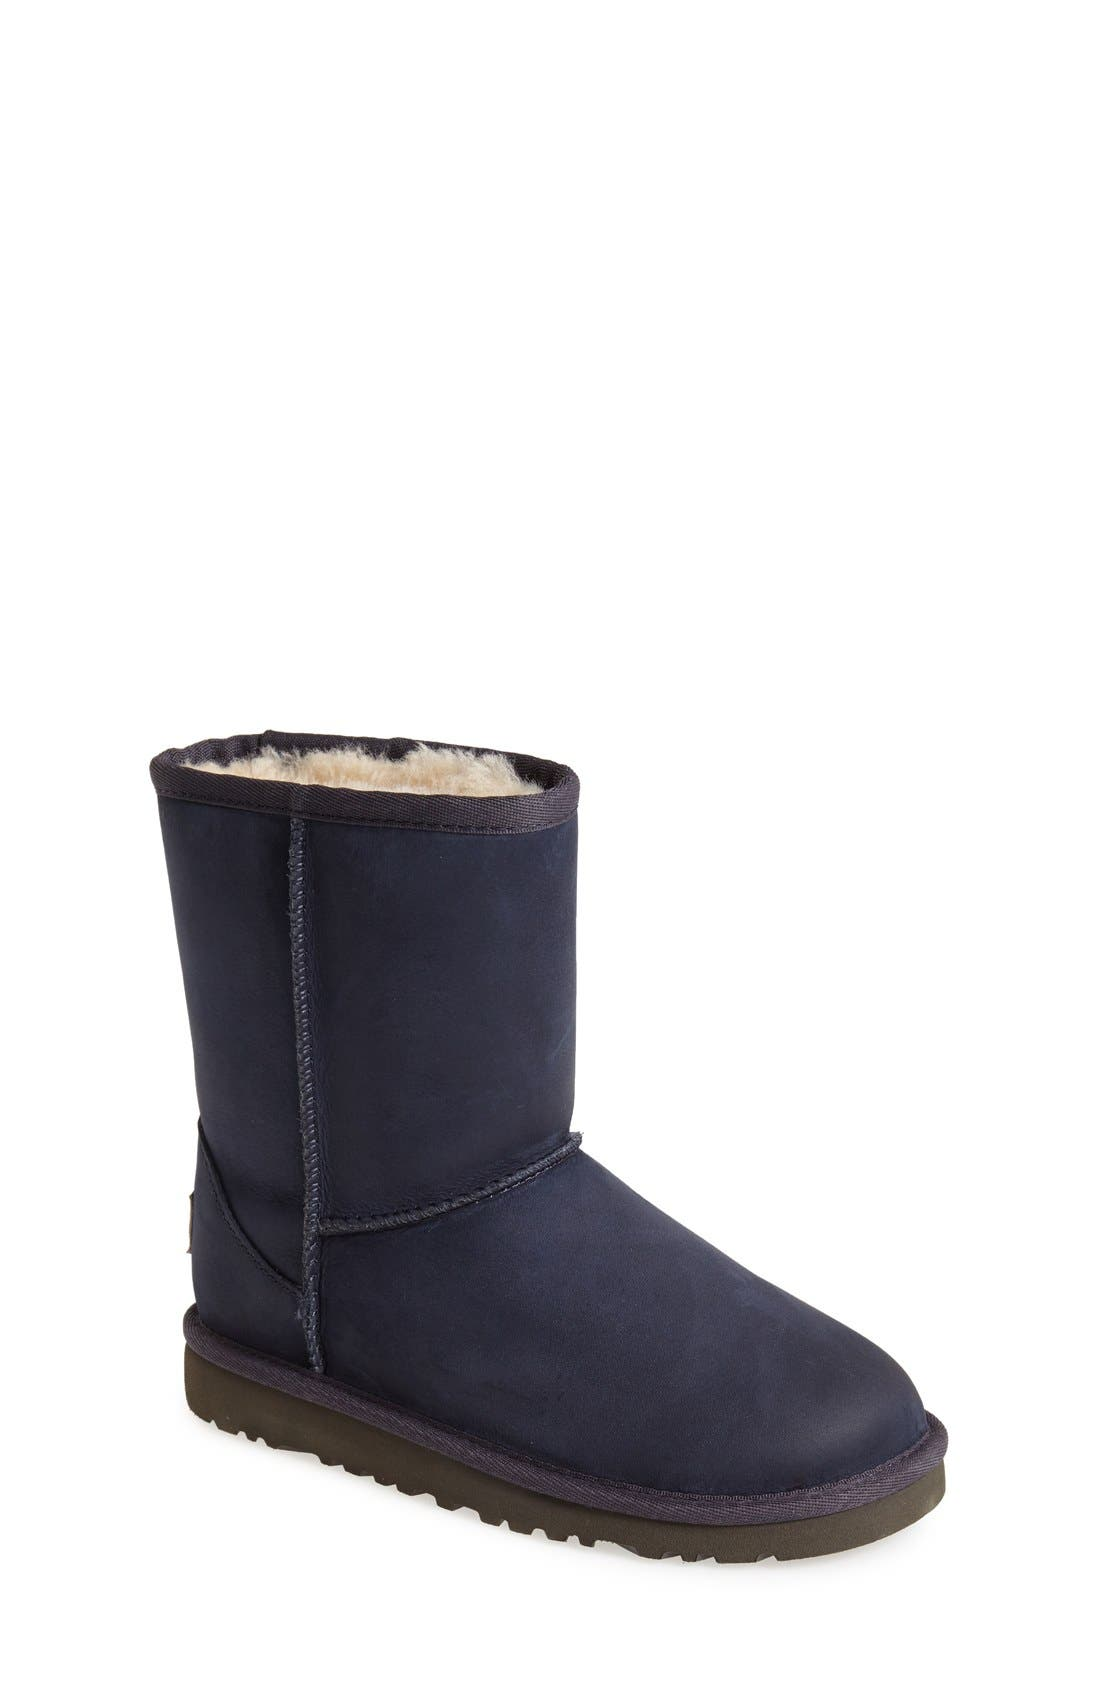 Alternate Image 1 Selected - UGG® Classic Short Water Resistant Leather Boot (Little Kid & Big Kid)